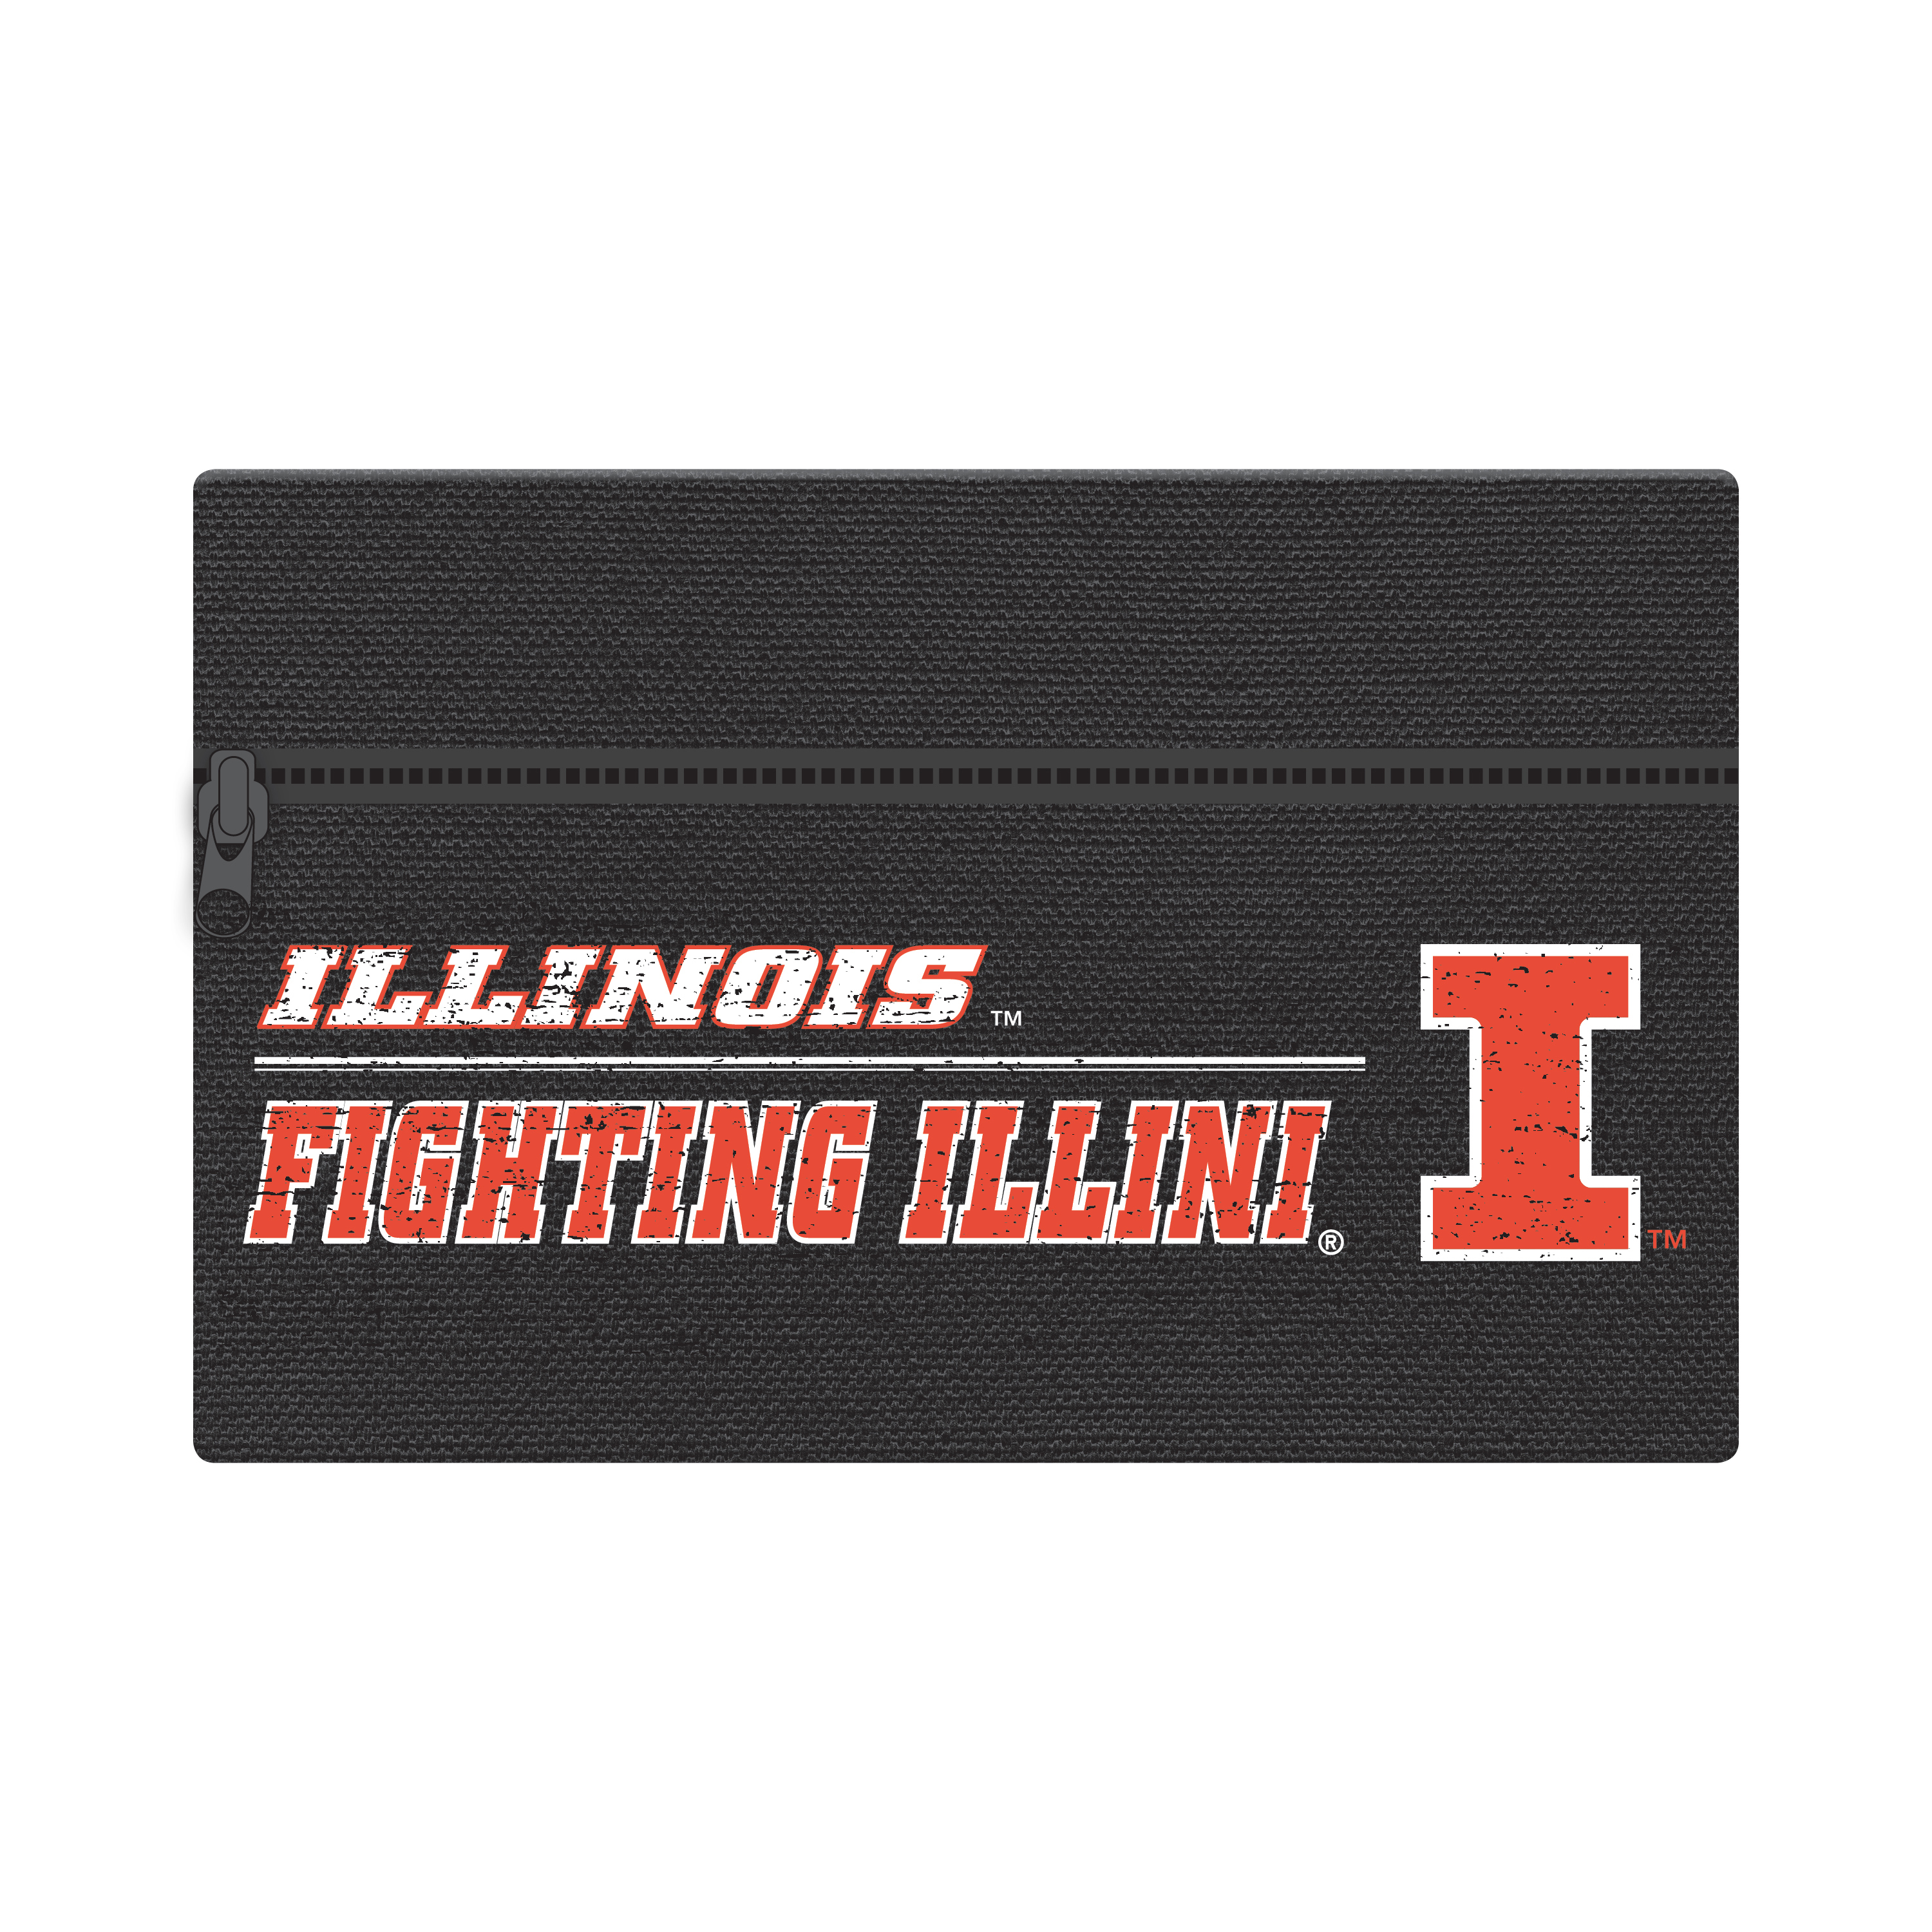 "NCAA Illinois Fighting Illini Zippered Cotton Canvas Pencil Pouch, 7.5"" by 4.625"""